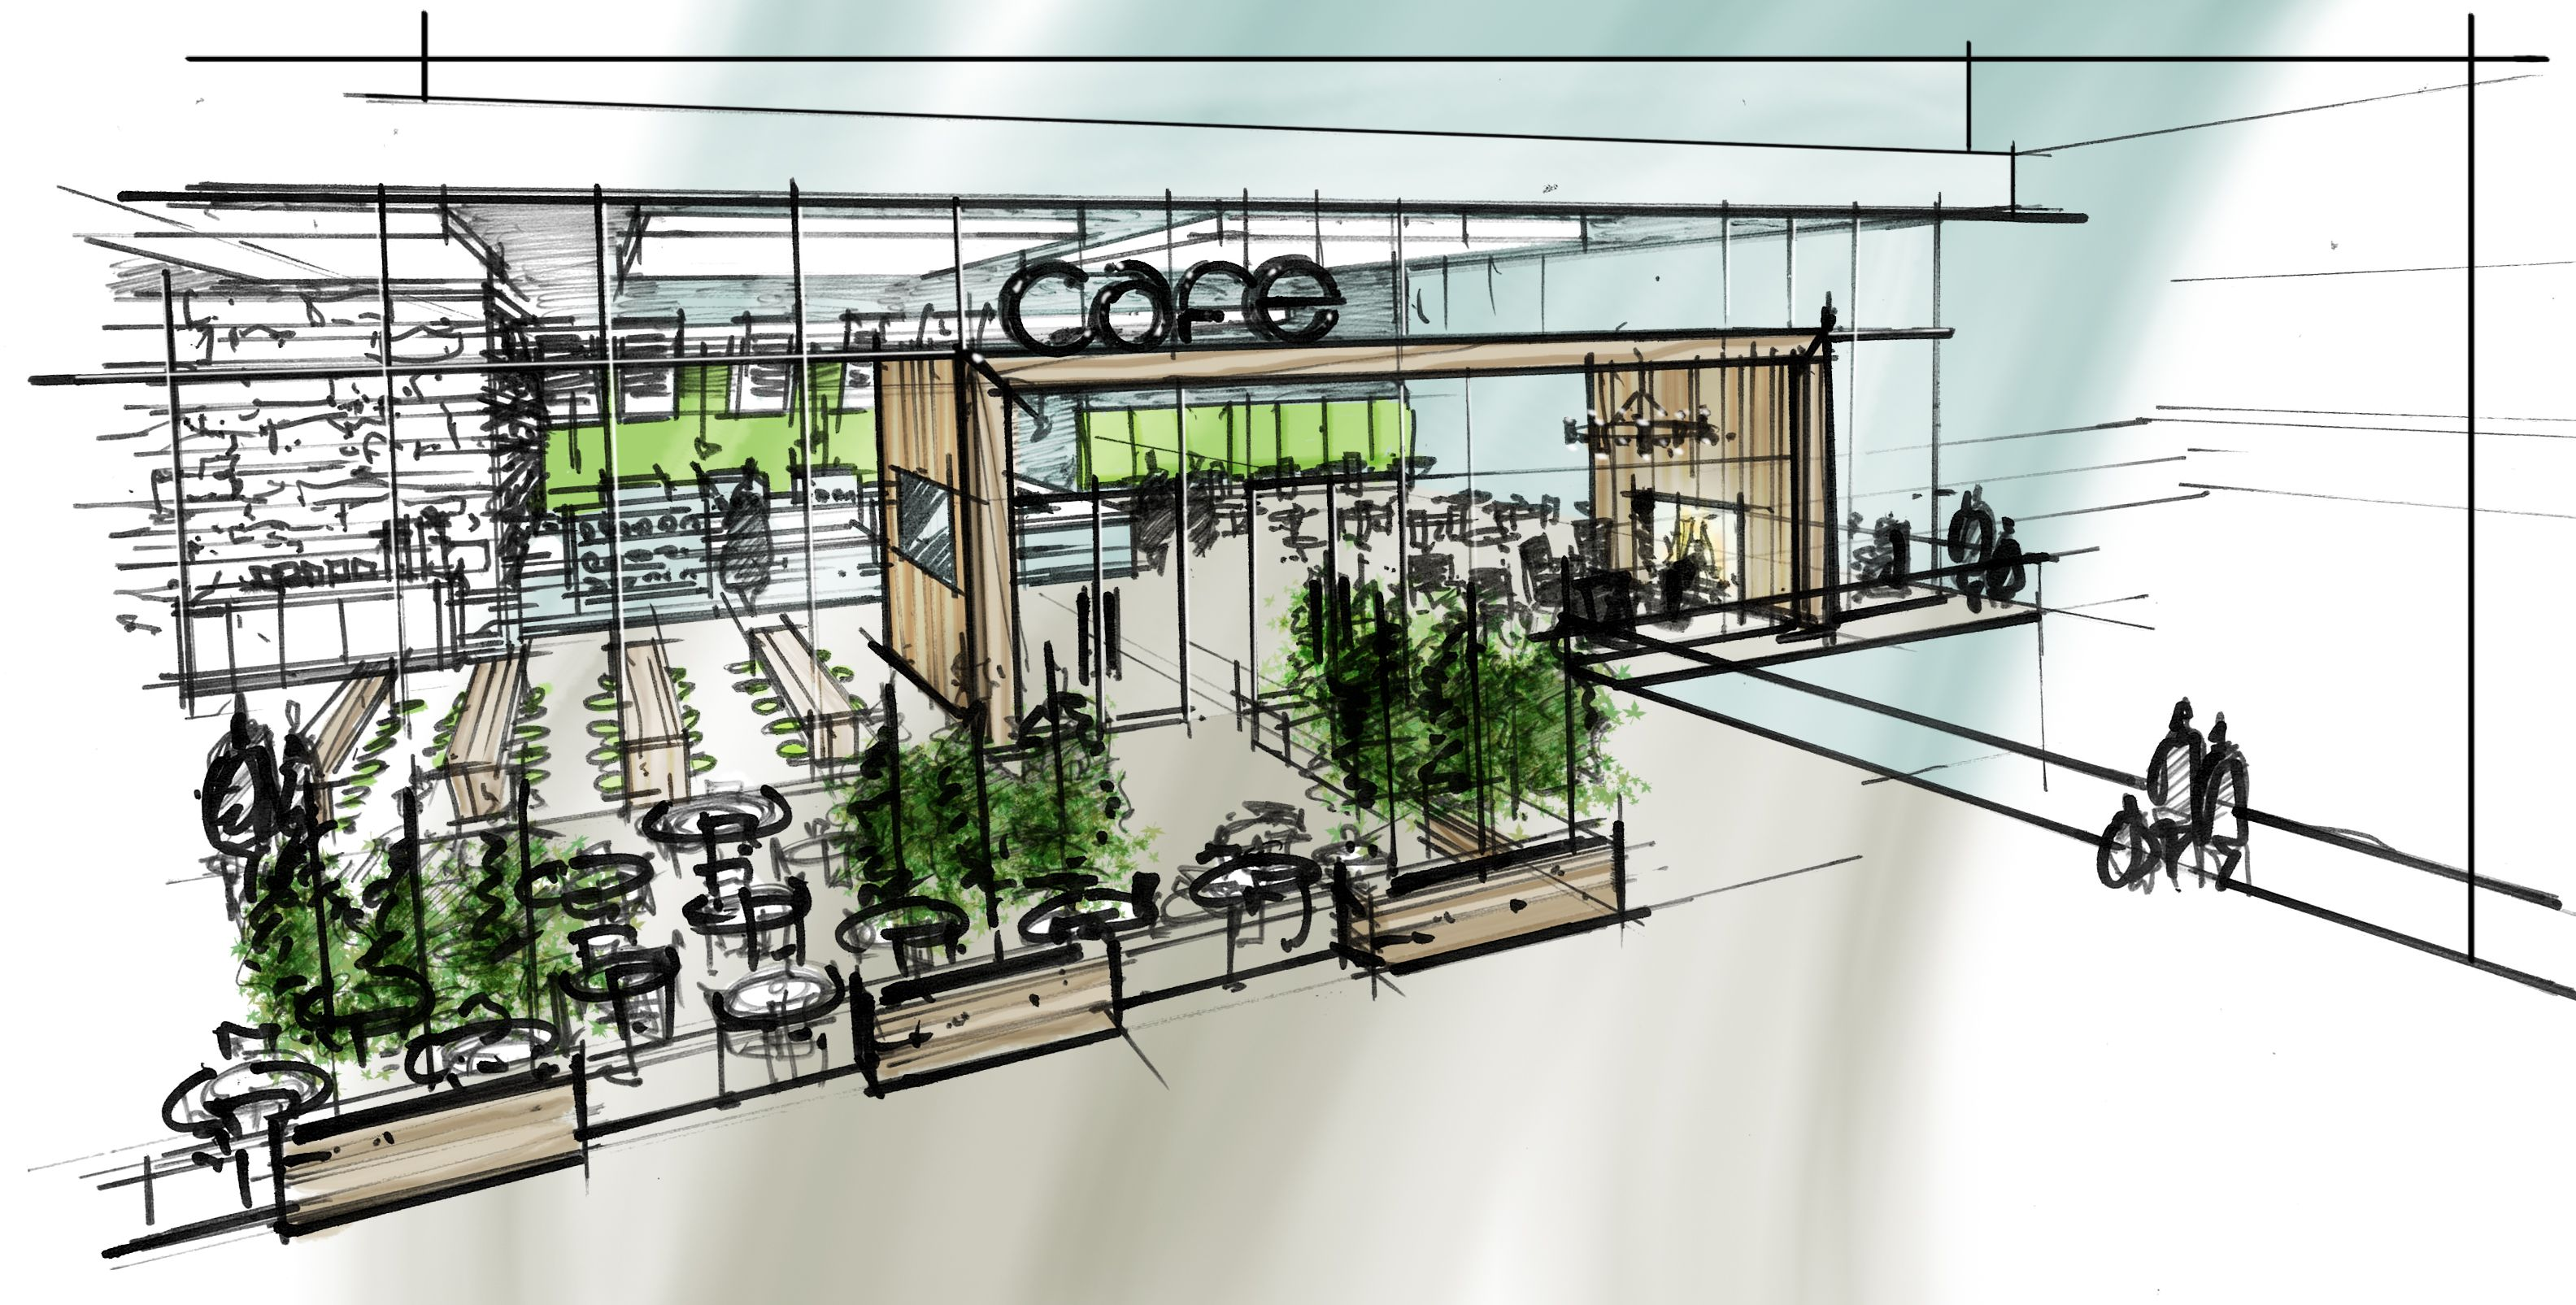 Cafe Concept - Quick conceptual sketch of a cafe on the water ...